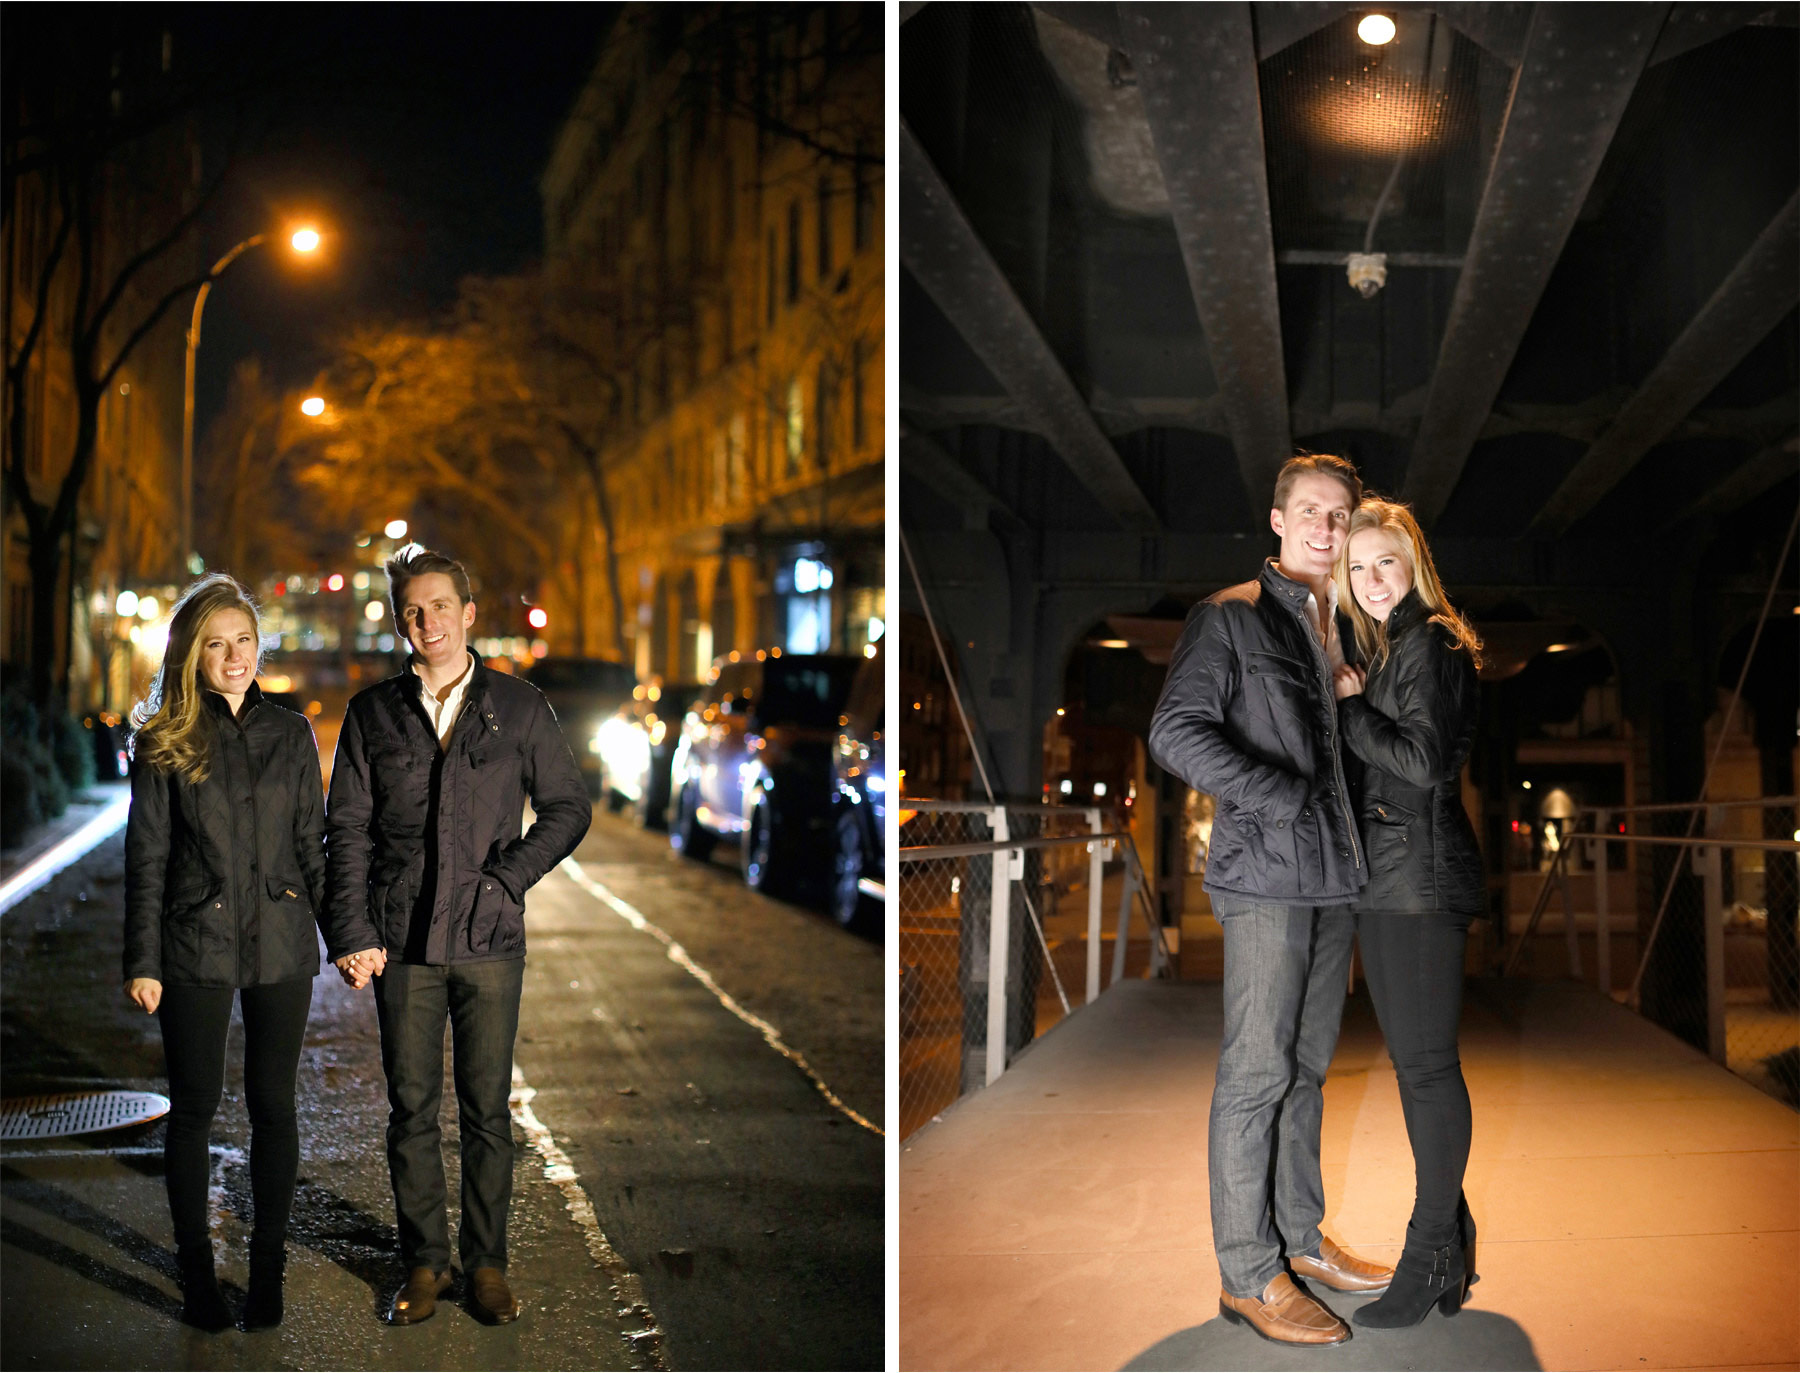 10-New-York-City-Wedding-Photographer-by-Andrew-Vick-Photography-Winter-Engagement-Bride-Groom-Night-Embrace-Emily-and-Jon.jpg